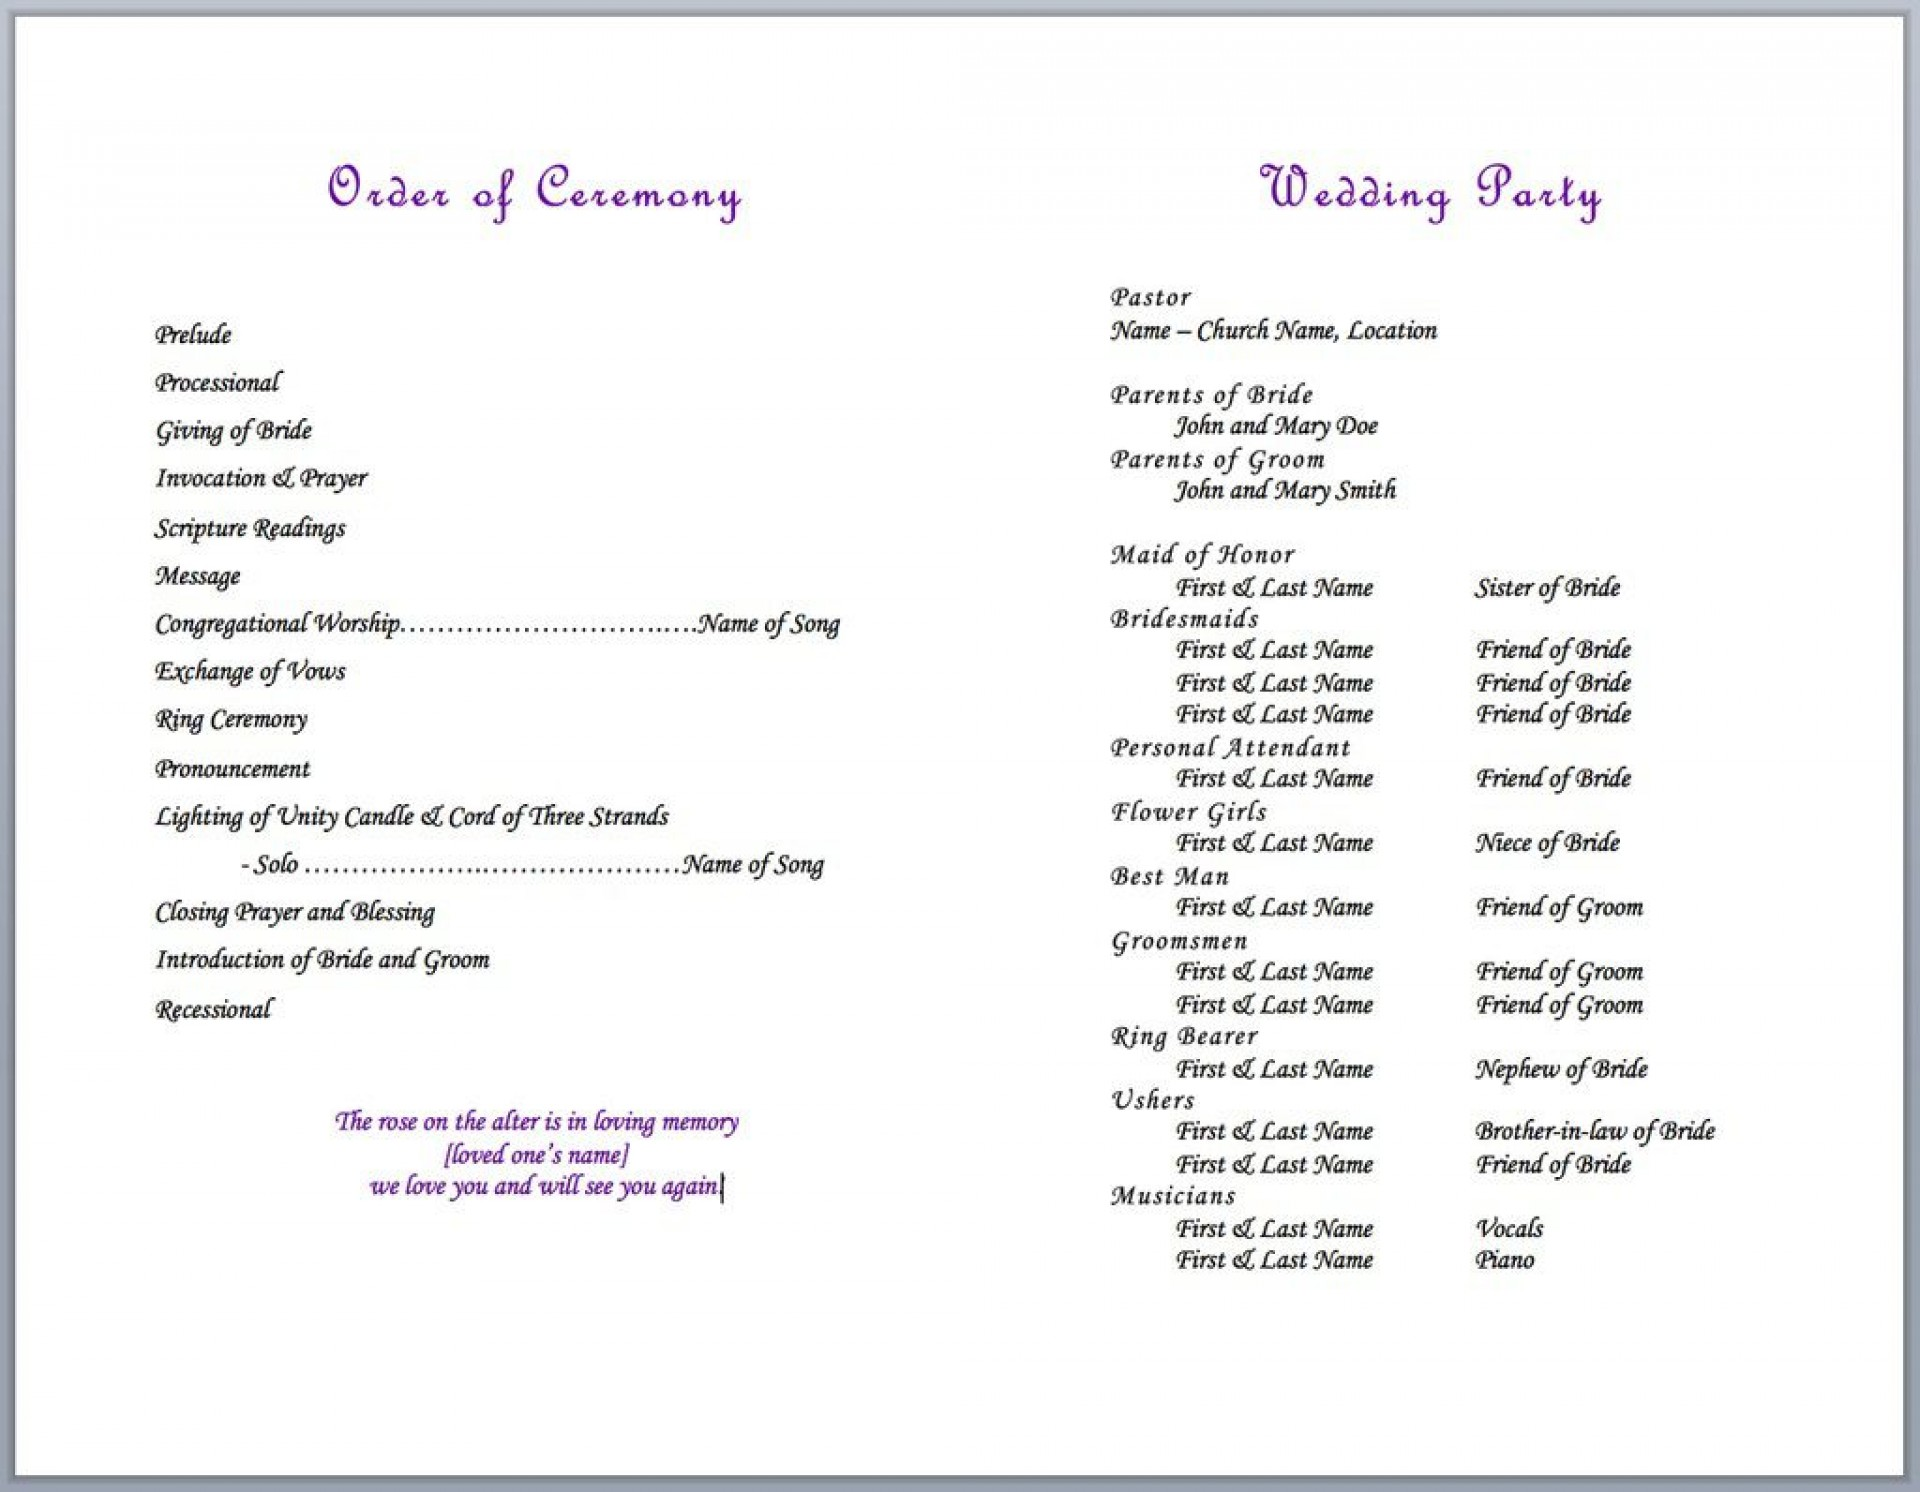 004 Formidable Wedding Party List Template Image  Printable Member1920